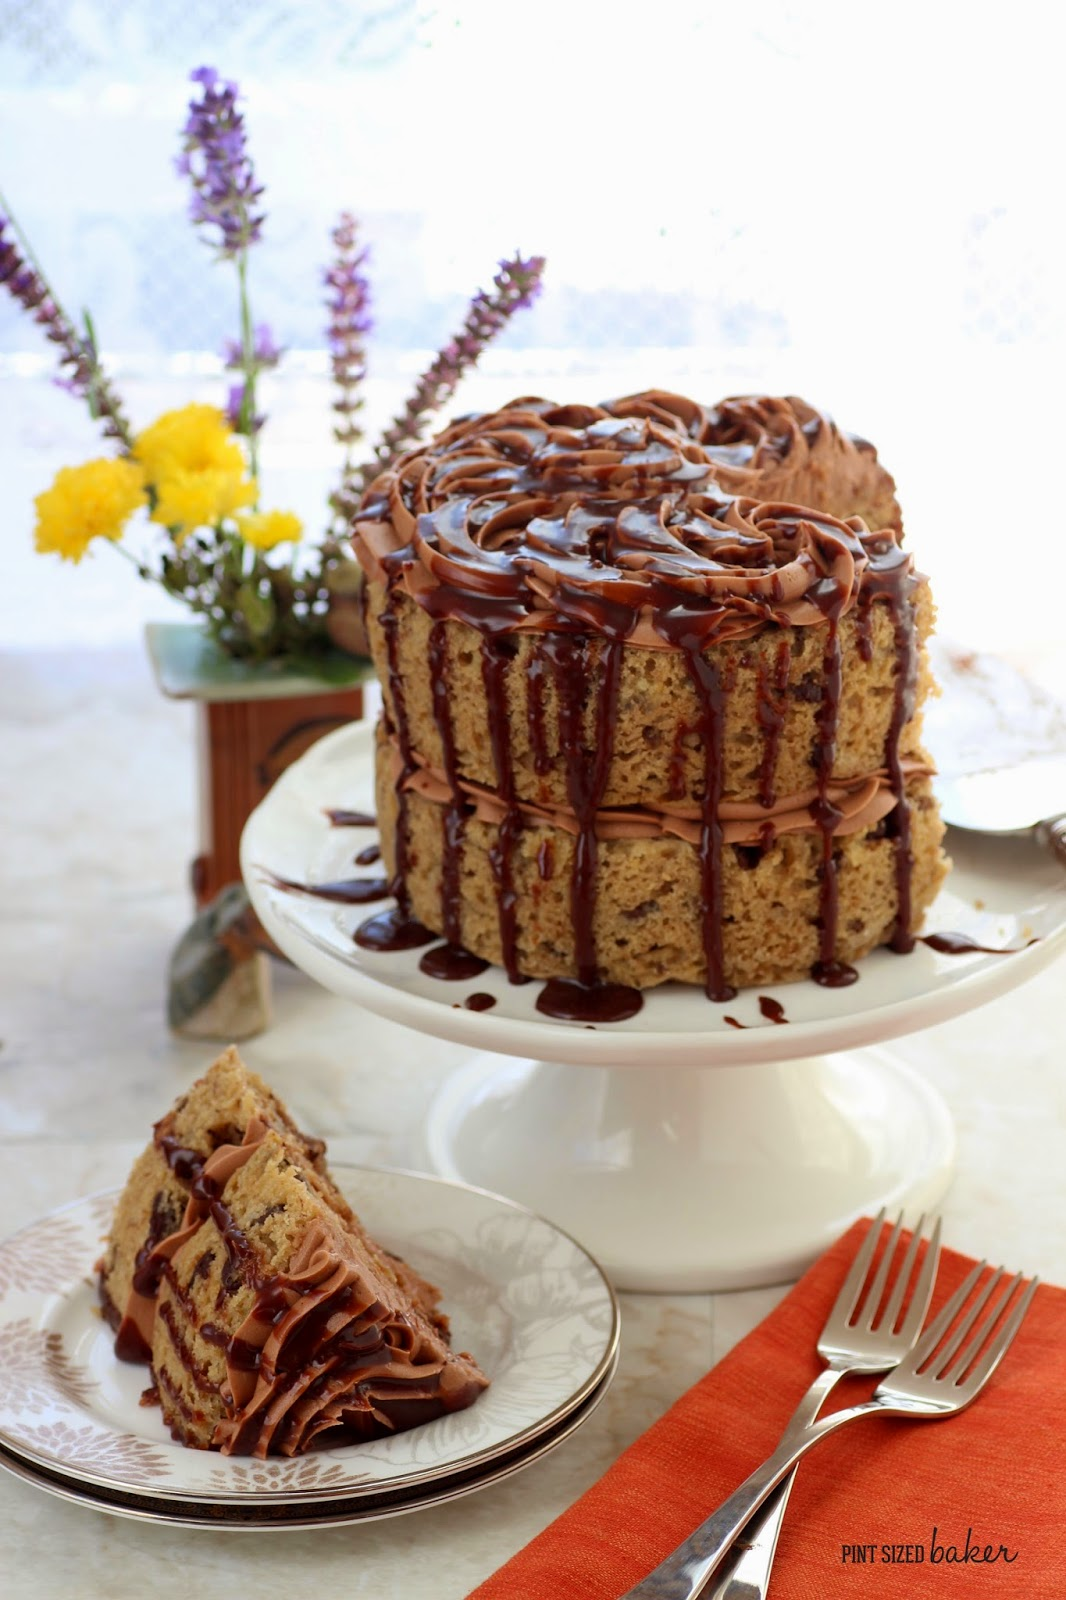 Bake this banana cake in two 6-inch cakes or one 9-inch cake, cover it in chocolate frosting and then drizzle it with melted chocolate hazelnut sauce.